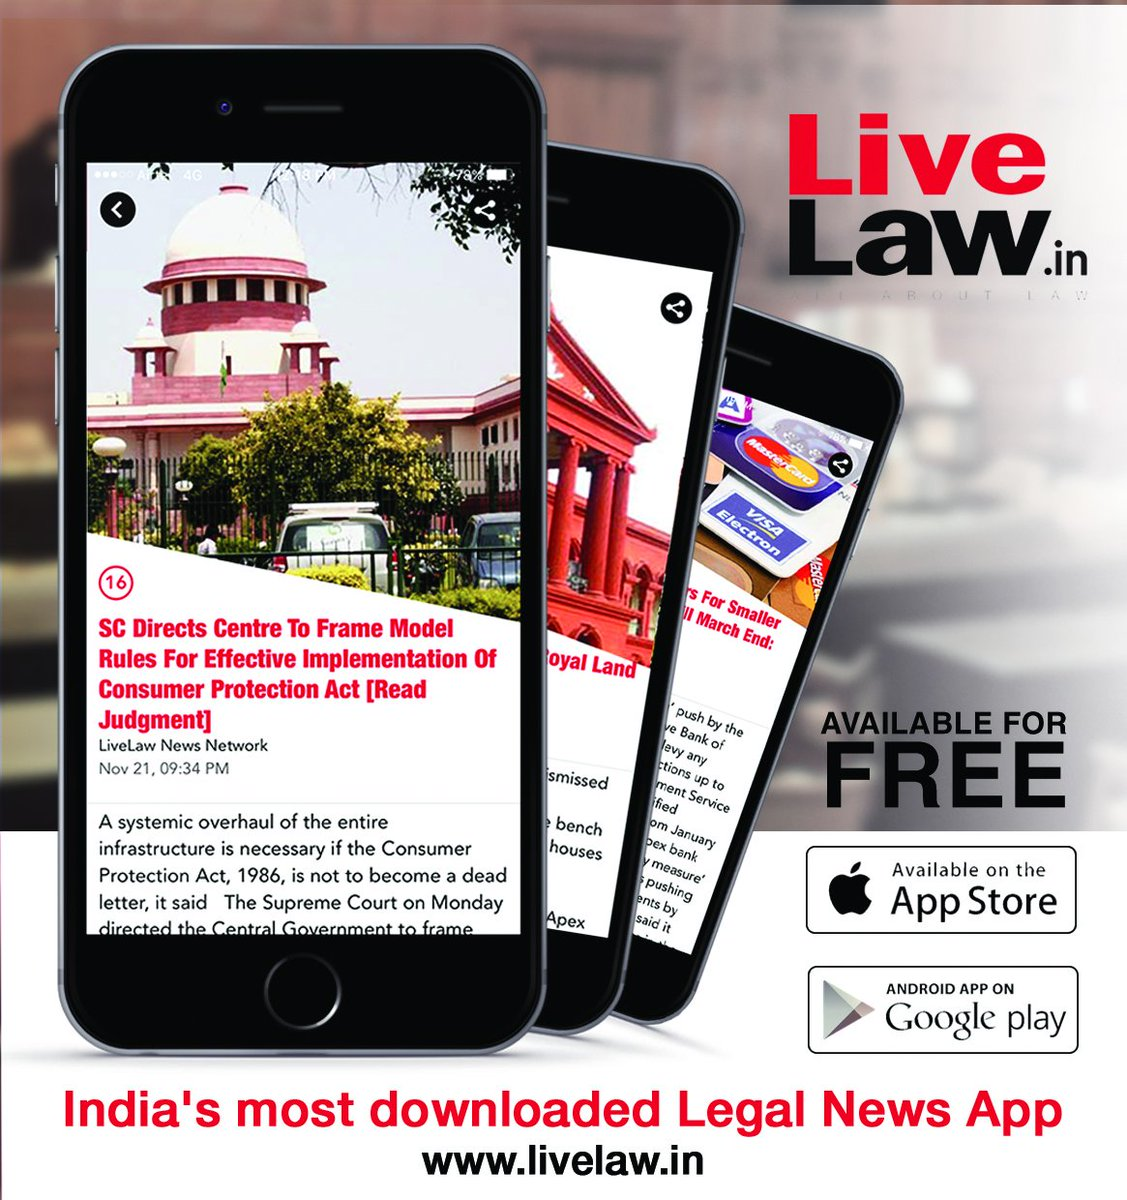 Live Law on Twitter: